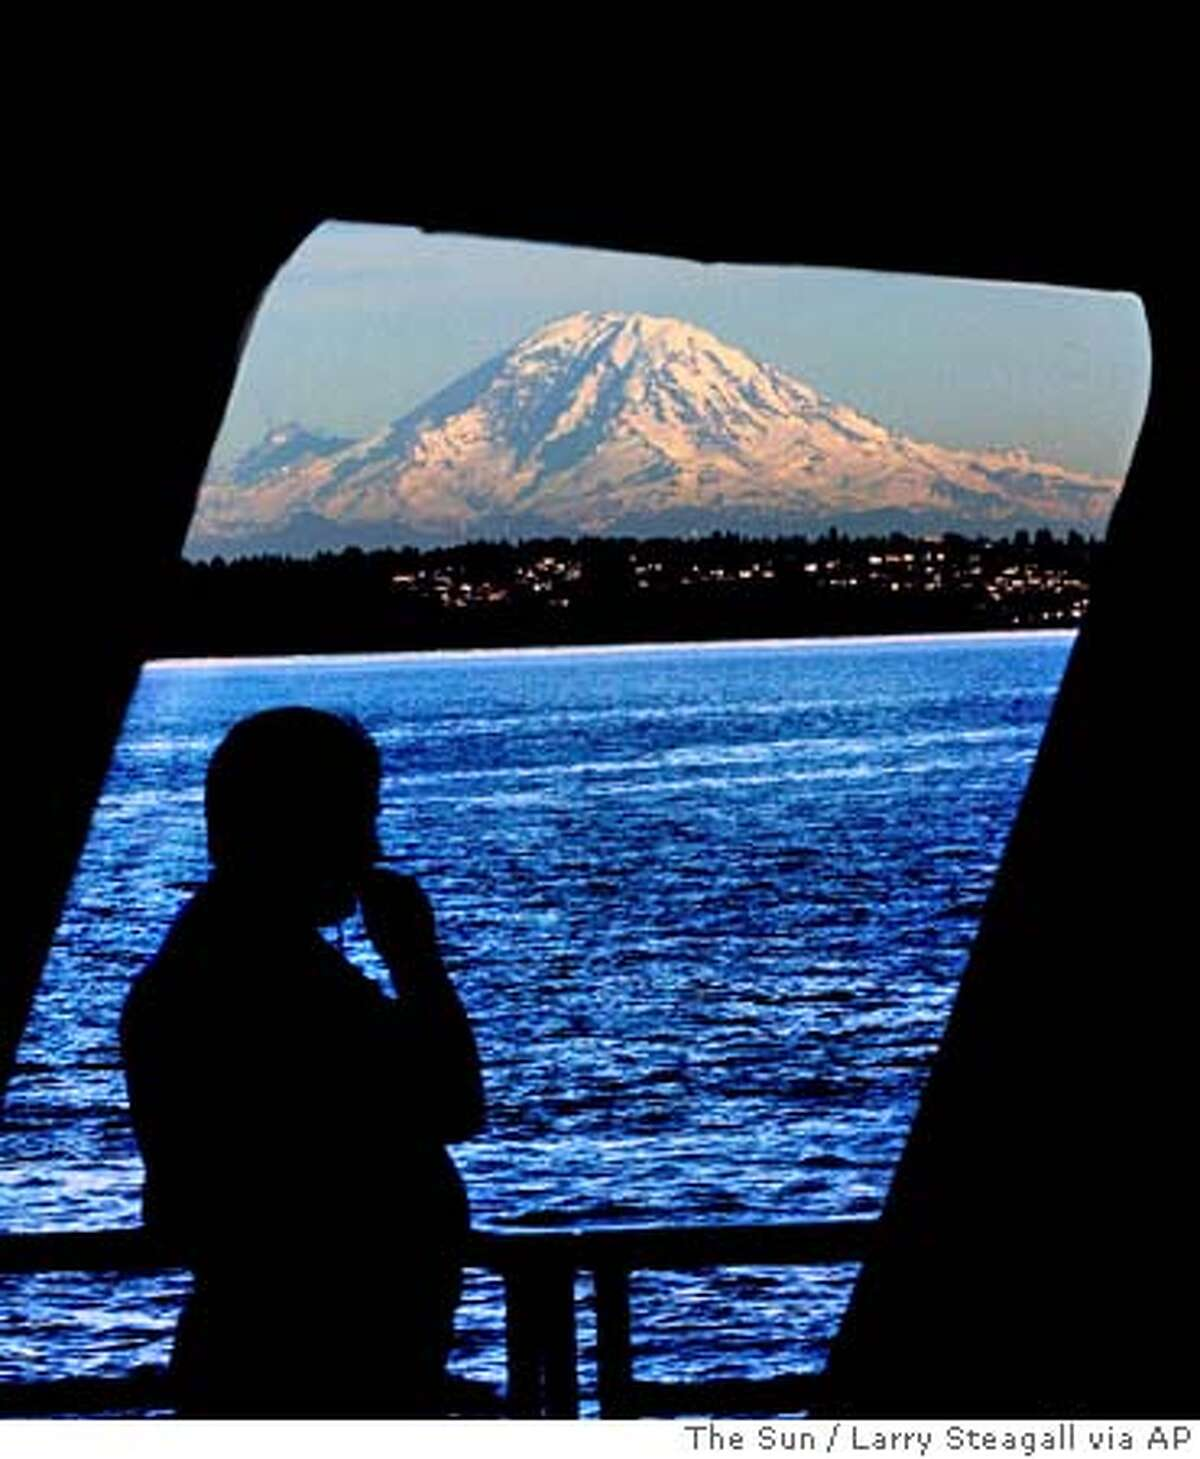 A commuter on the Spokane Auto Ferry from Edmonds to Kingston has a spectacular view of Mount across Puget Sound, on Monday, June 30, 2003. (AP Photo/The Sun, Larry Steagall)